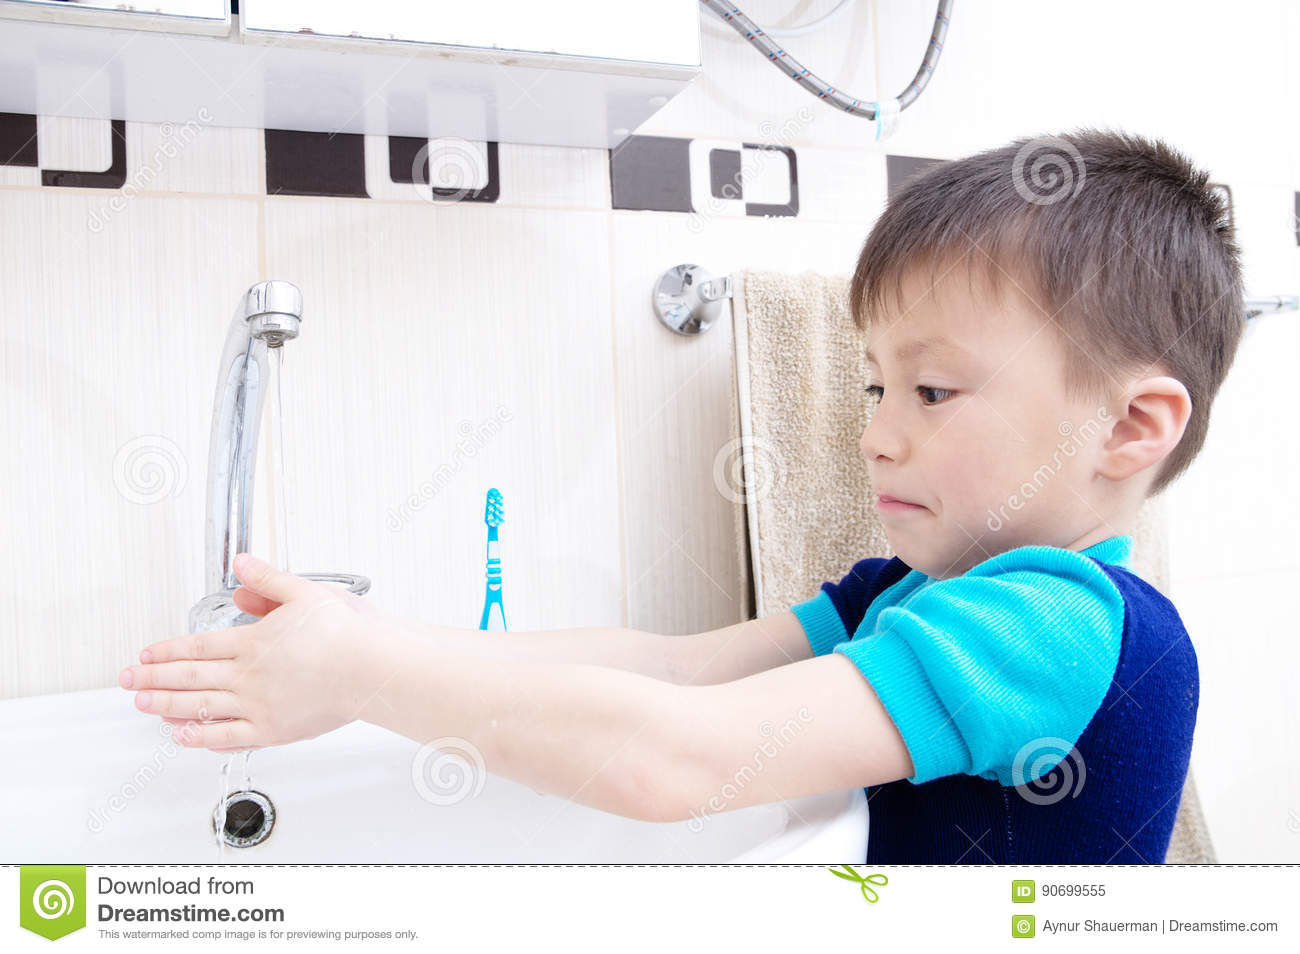 Boy Washing Hands Child Personal Health Care Hygiene